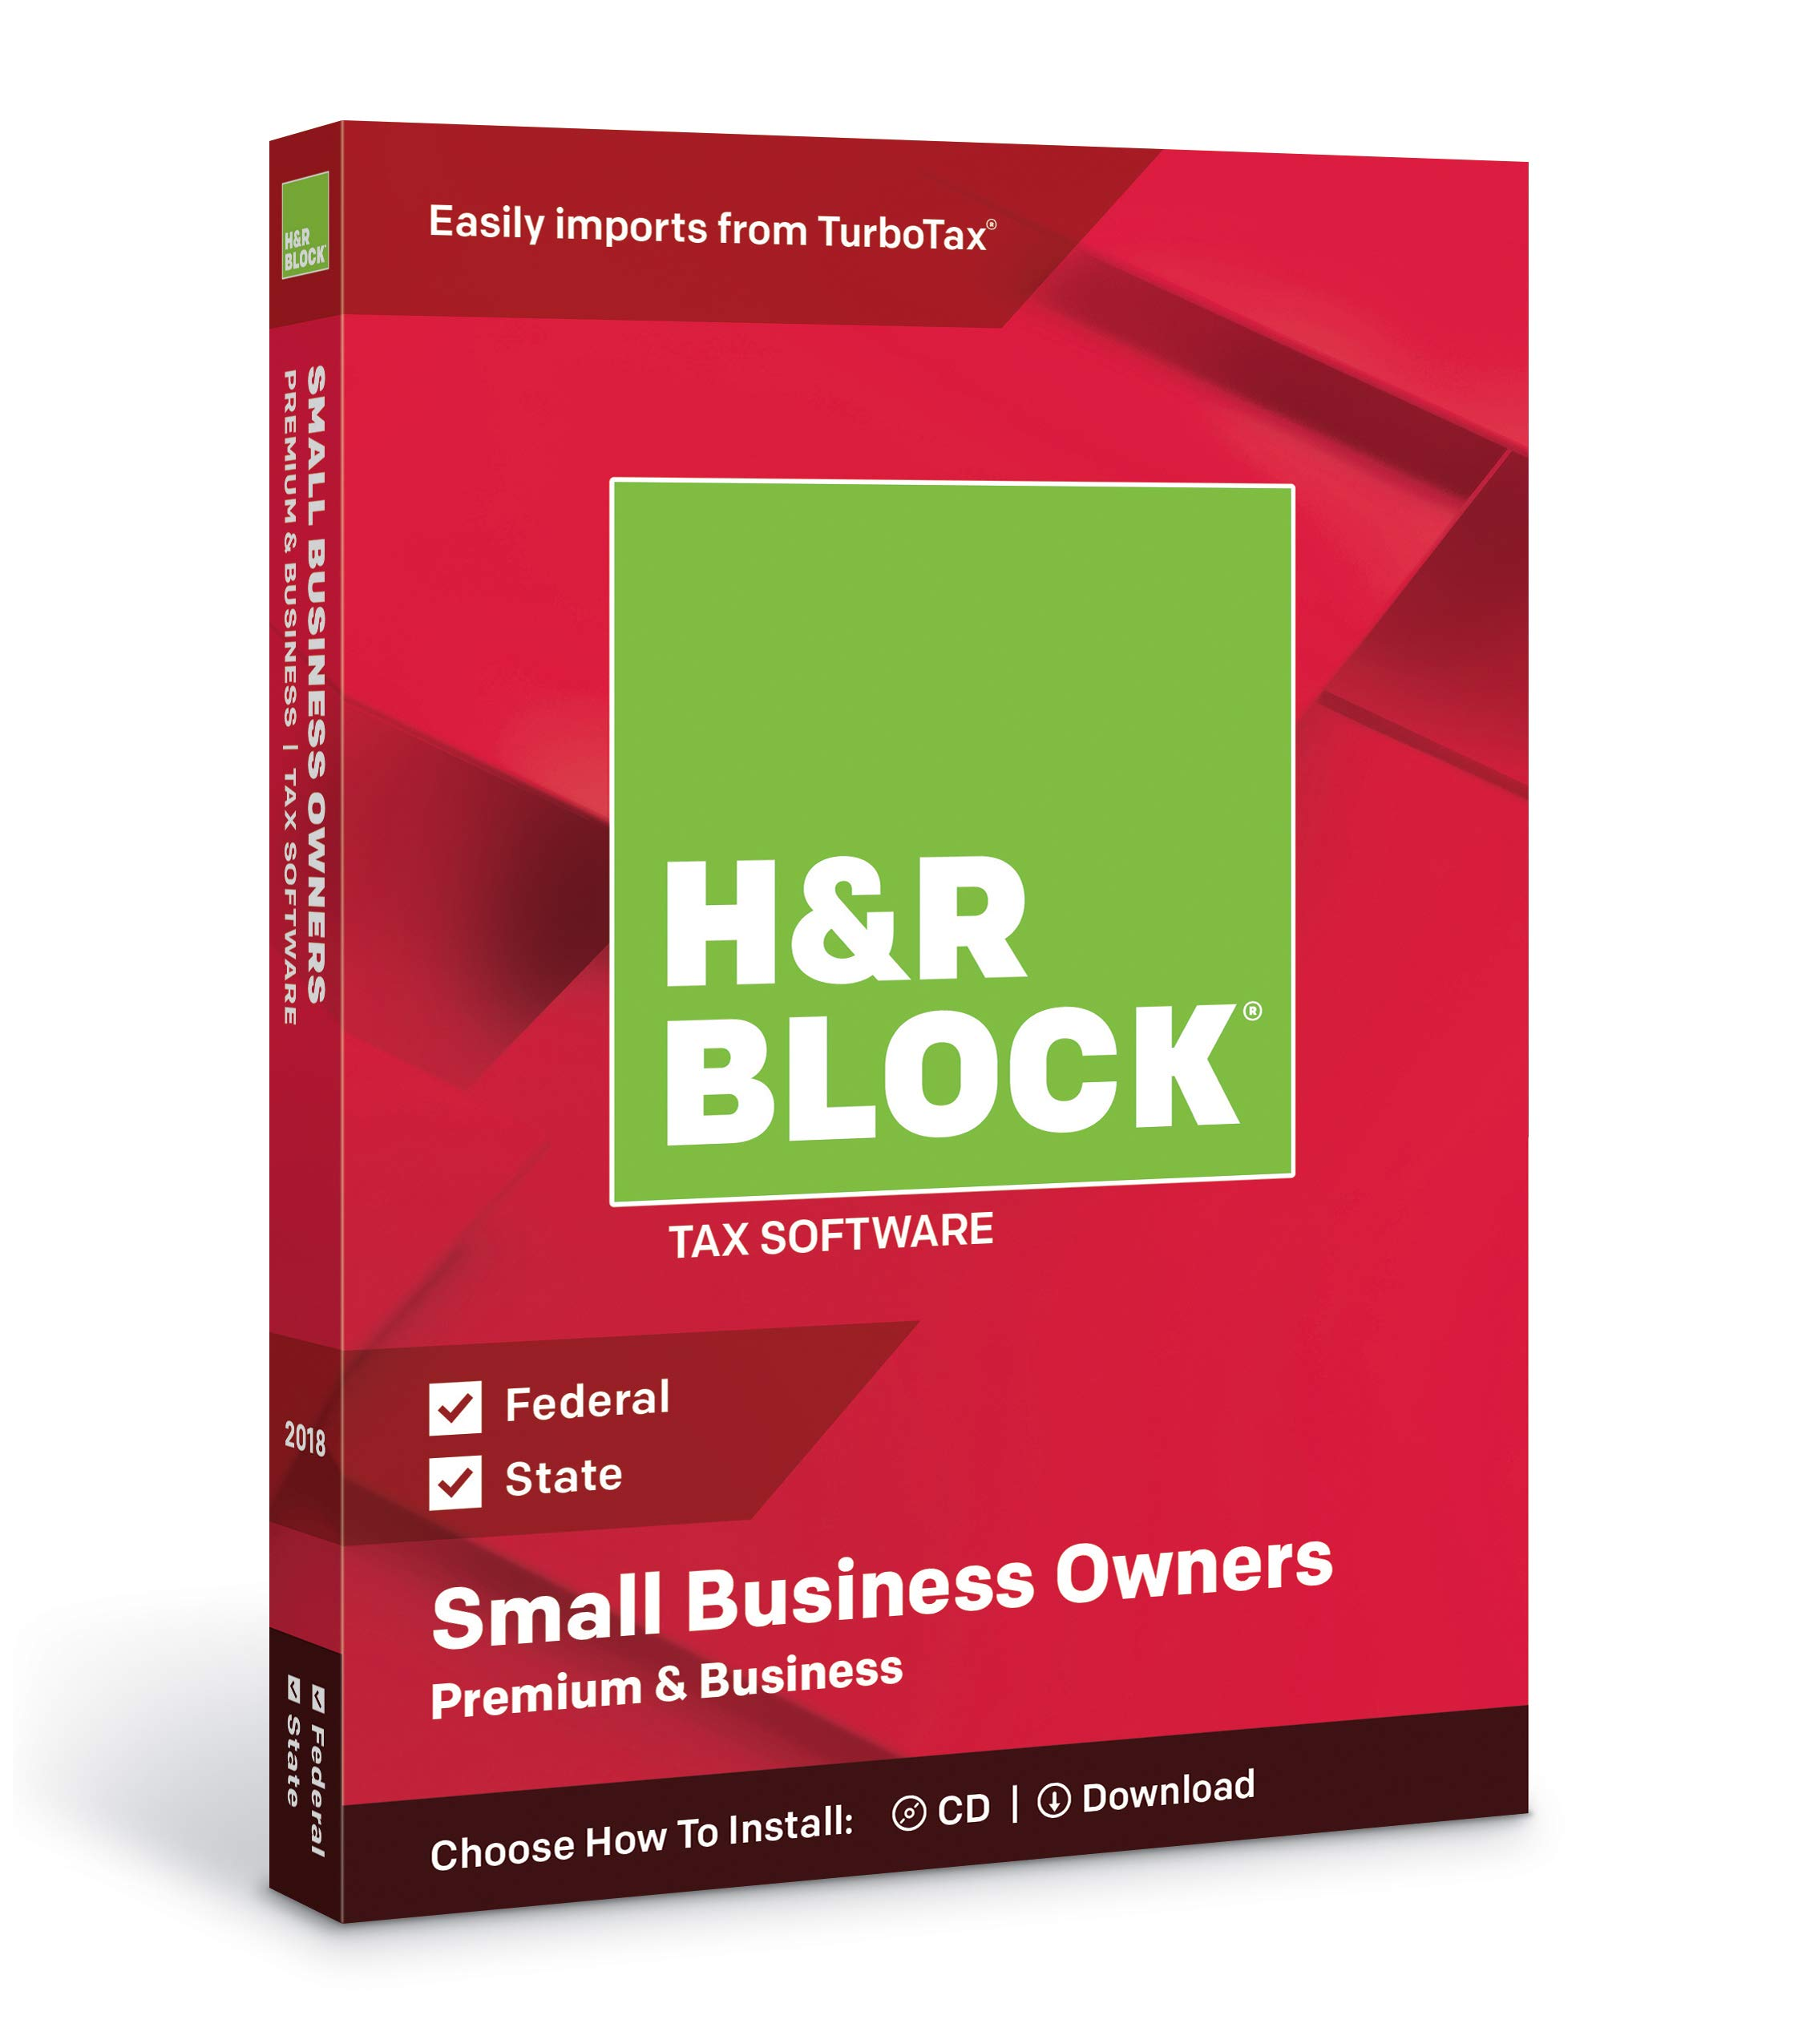 H&R Block Premium & Business 2018 Federal + State Tax Software for Small Business Owners (Windows Vista, 7, 8.1, 10) by H&R Block